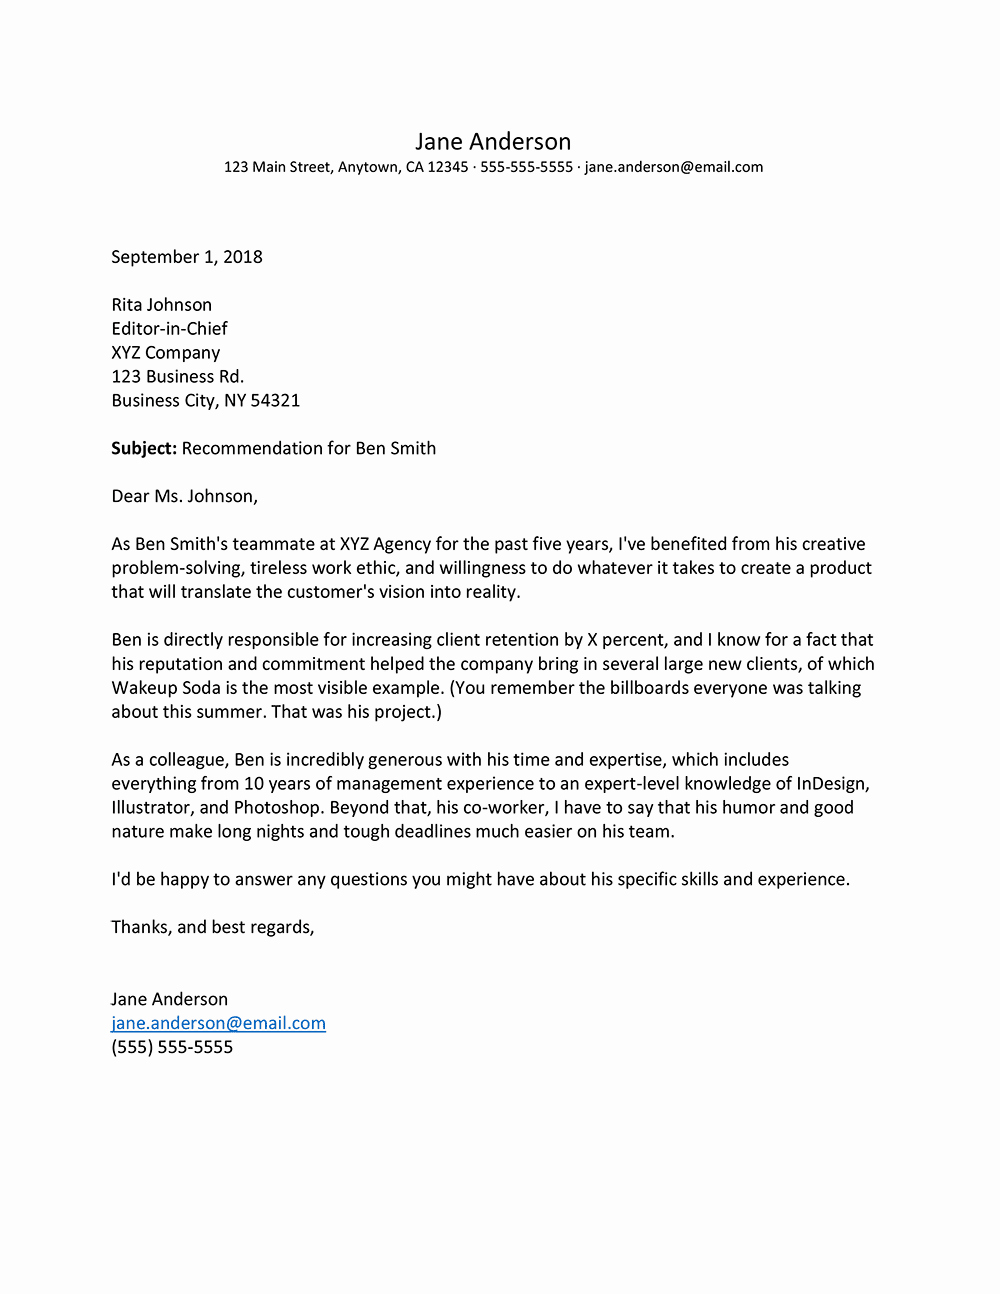 Letter Of Recommendation for Colleague New Letter Re Mendation for Coworker Sample A Teacher